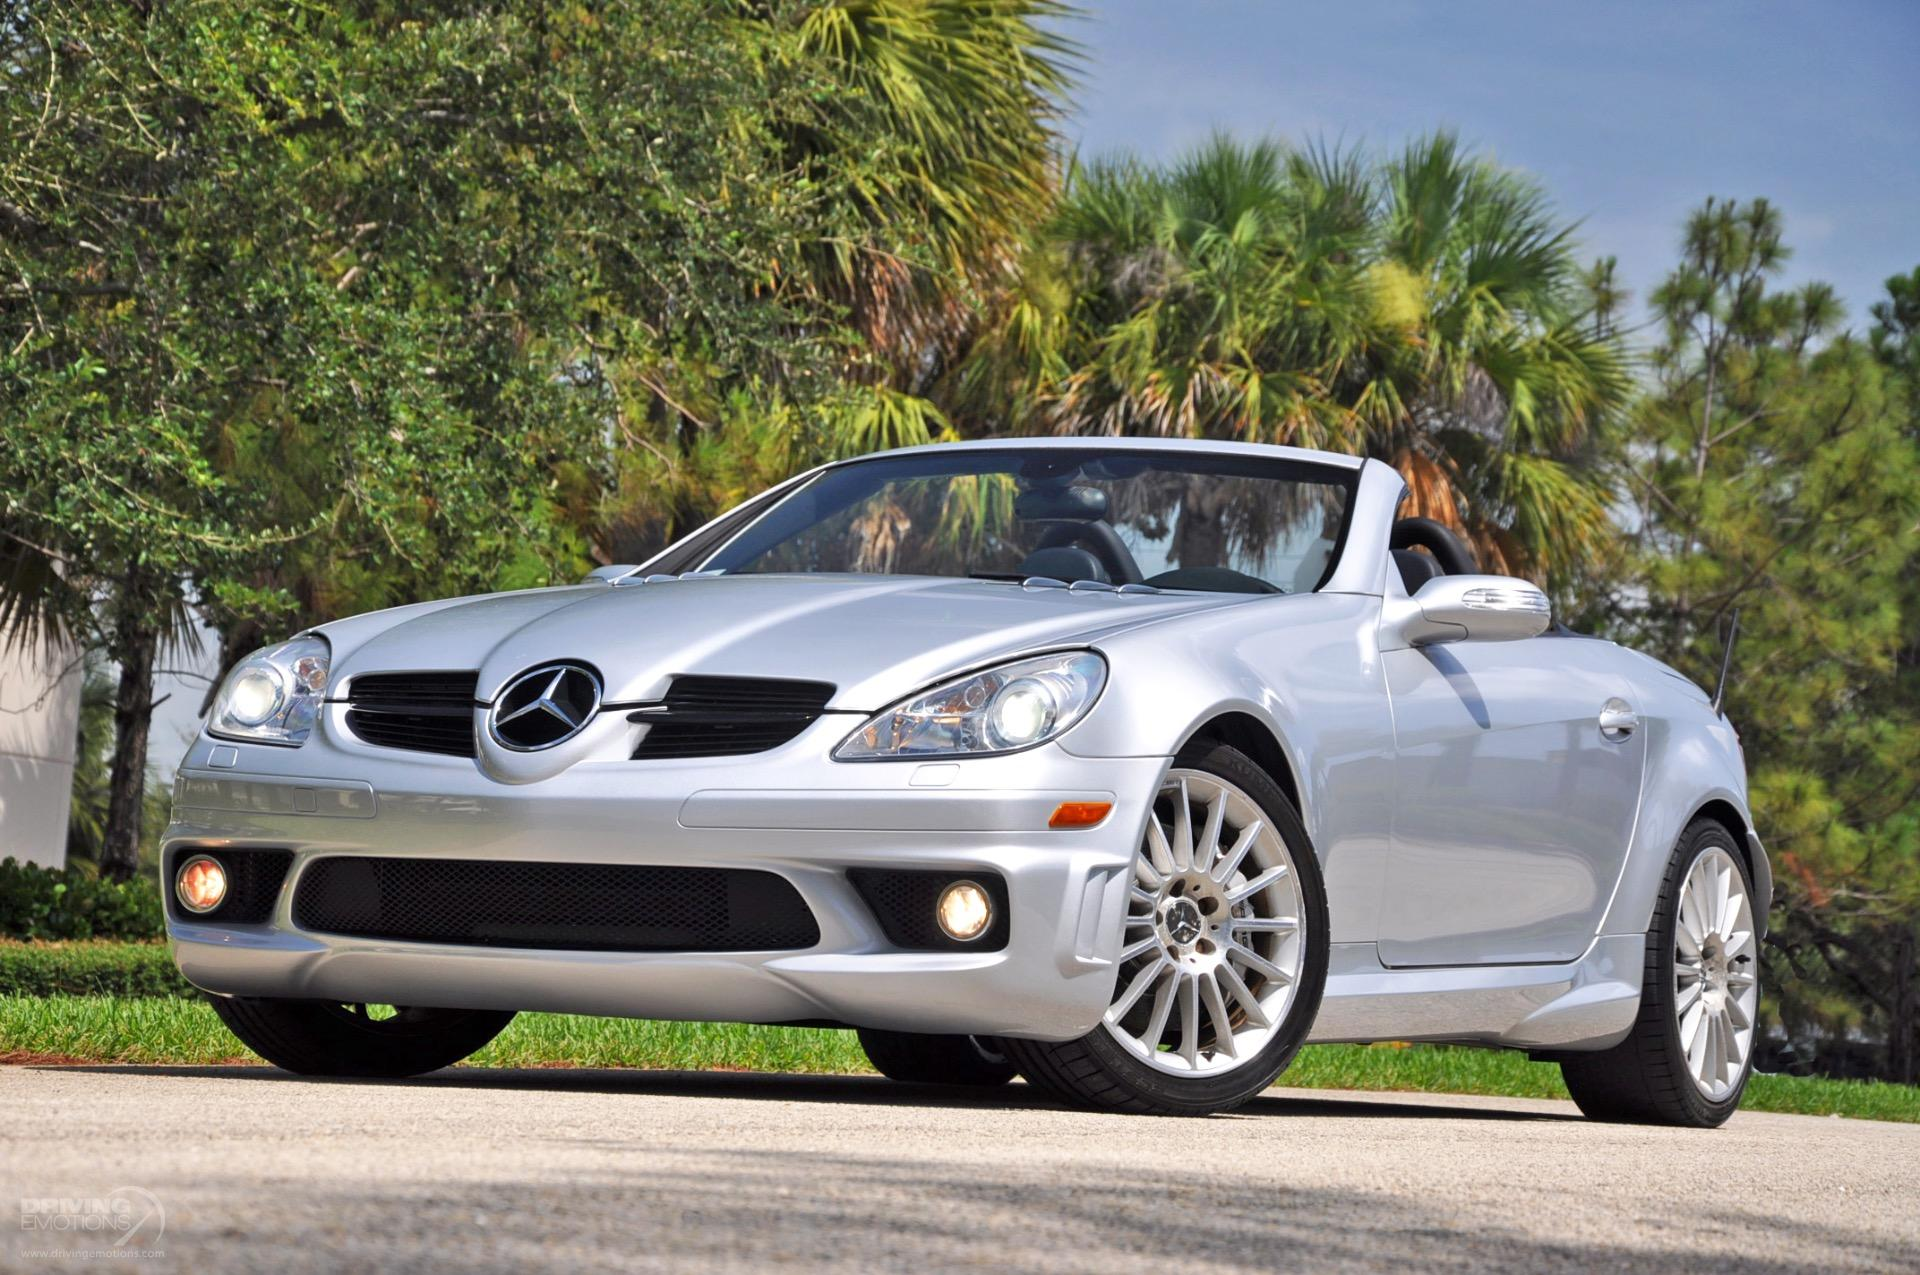 2005 mercedes benz slk55 amg slk 55 amg stock 5967 for sale near lake park fl fl mercedes. Black Bedroom Furniture Sets. Home Design Ideas